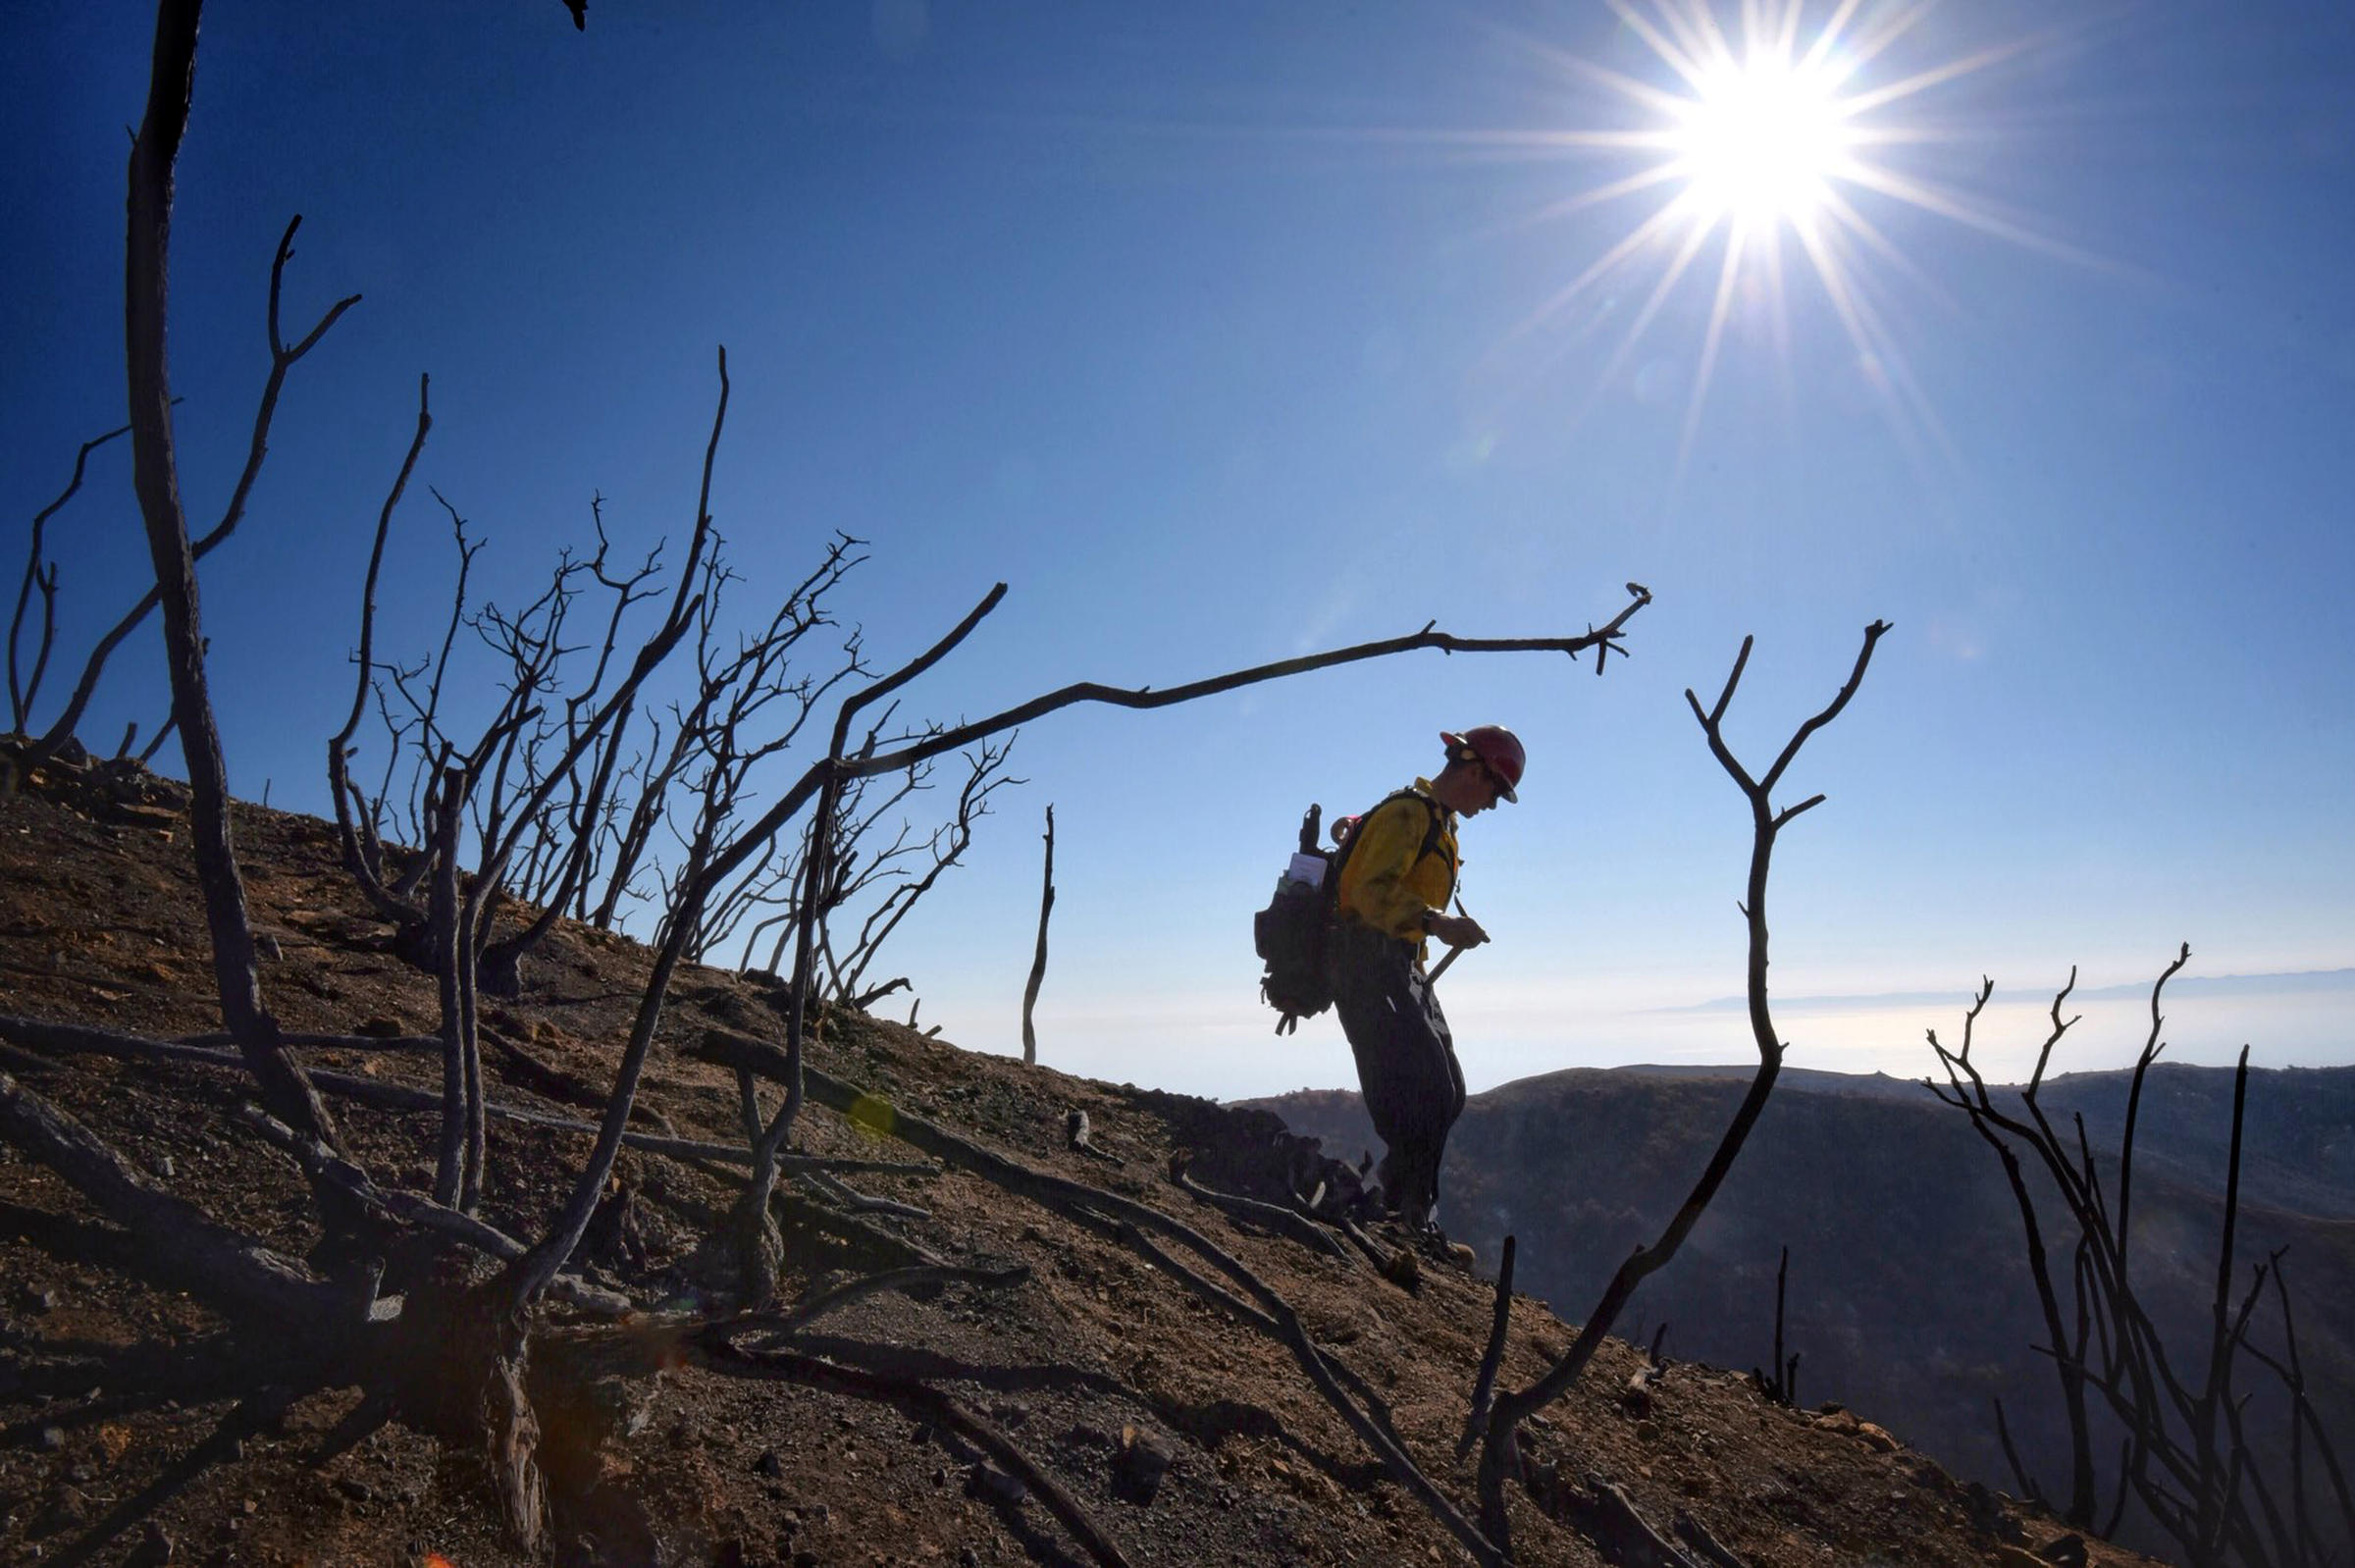 Thomas Fire, Largest Wildfire in California History, 100 Percent Contained